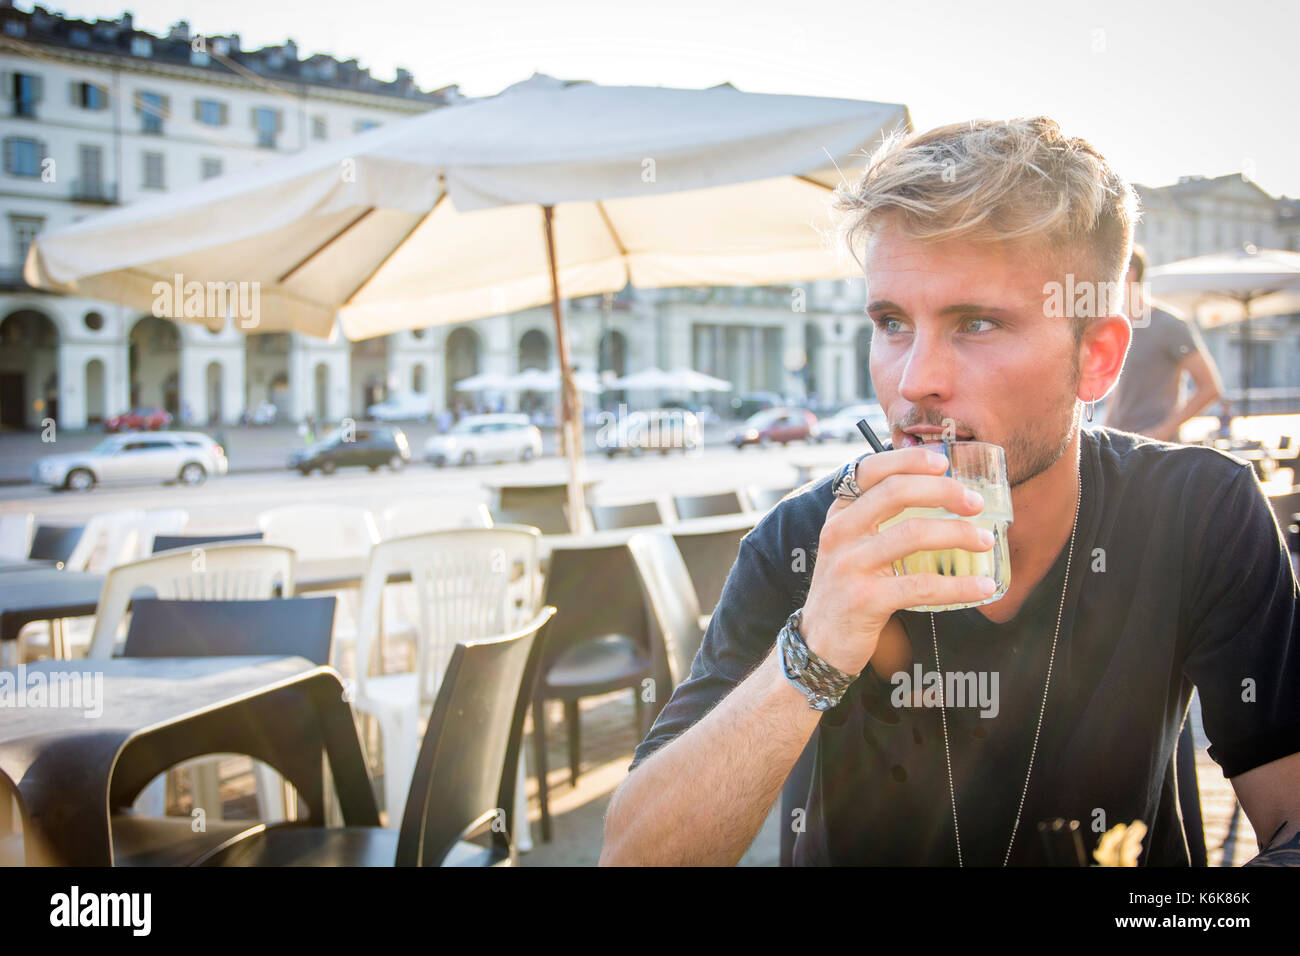 Handsome man sitting in cafe holding glass - Stock Image